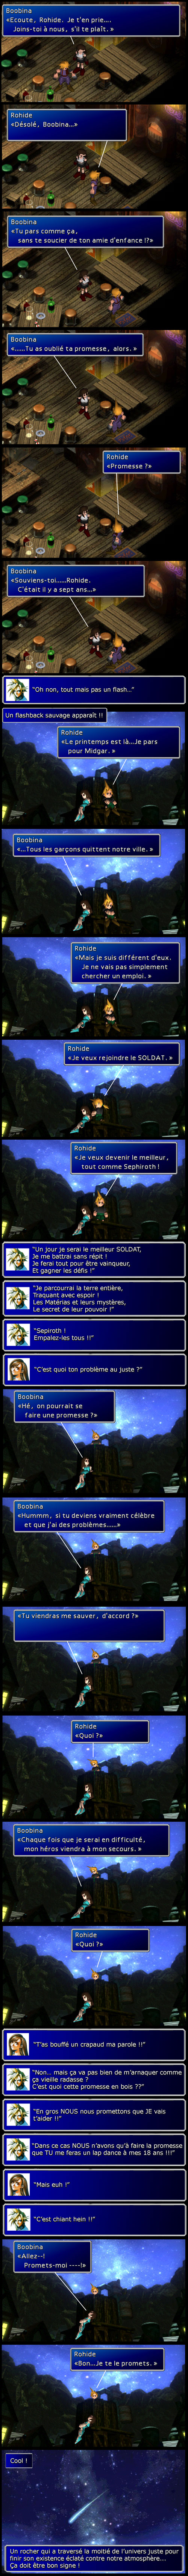 Final fantasy 7 : Flashback arnaque